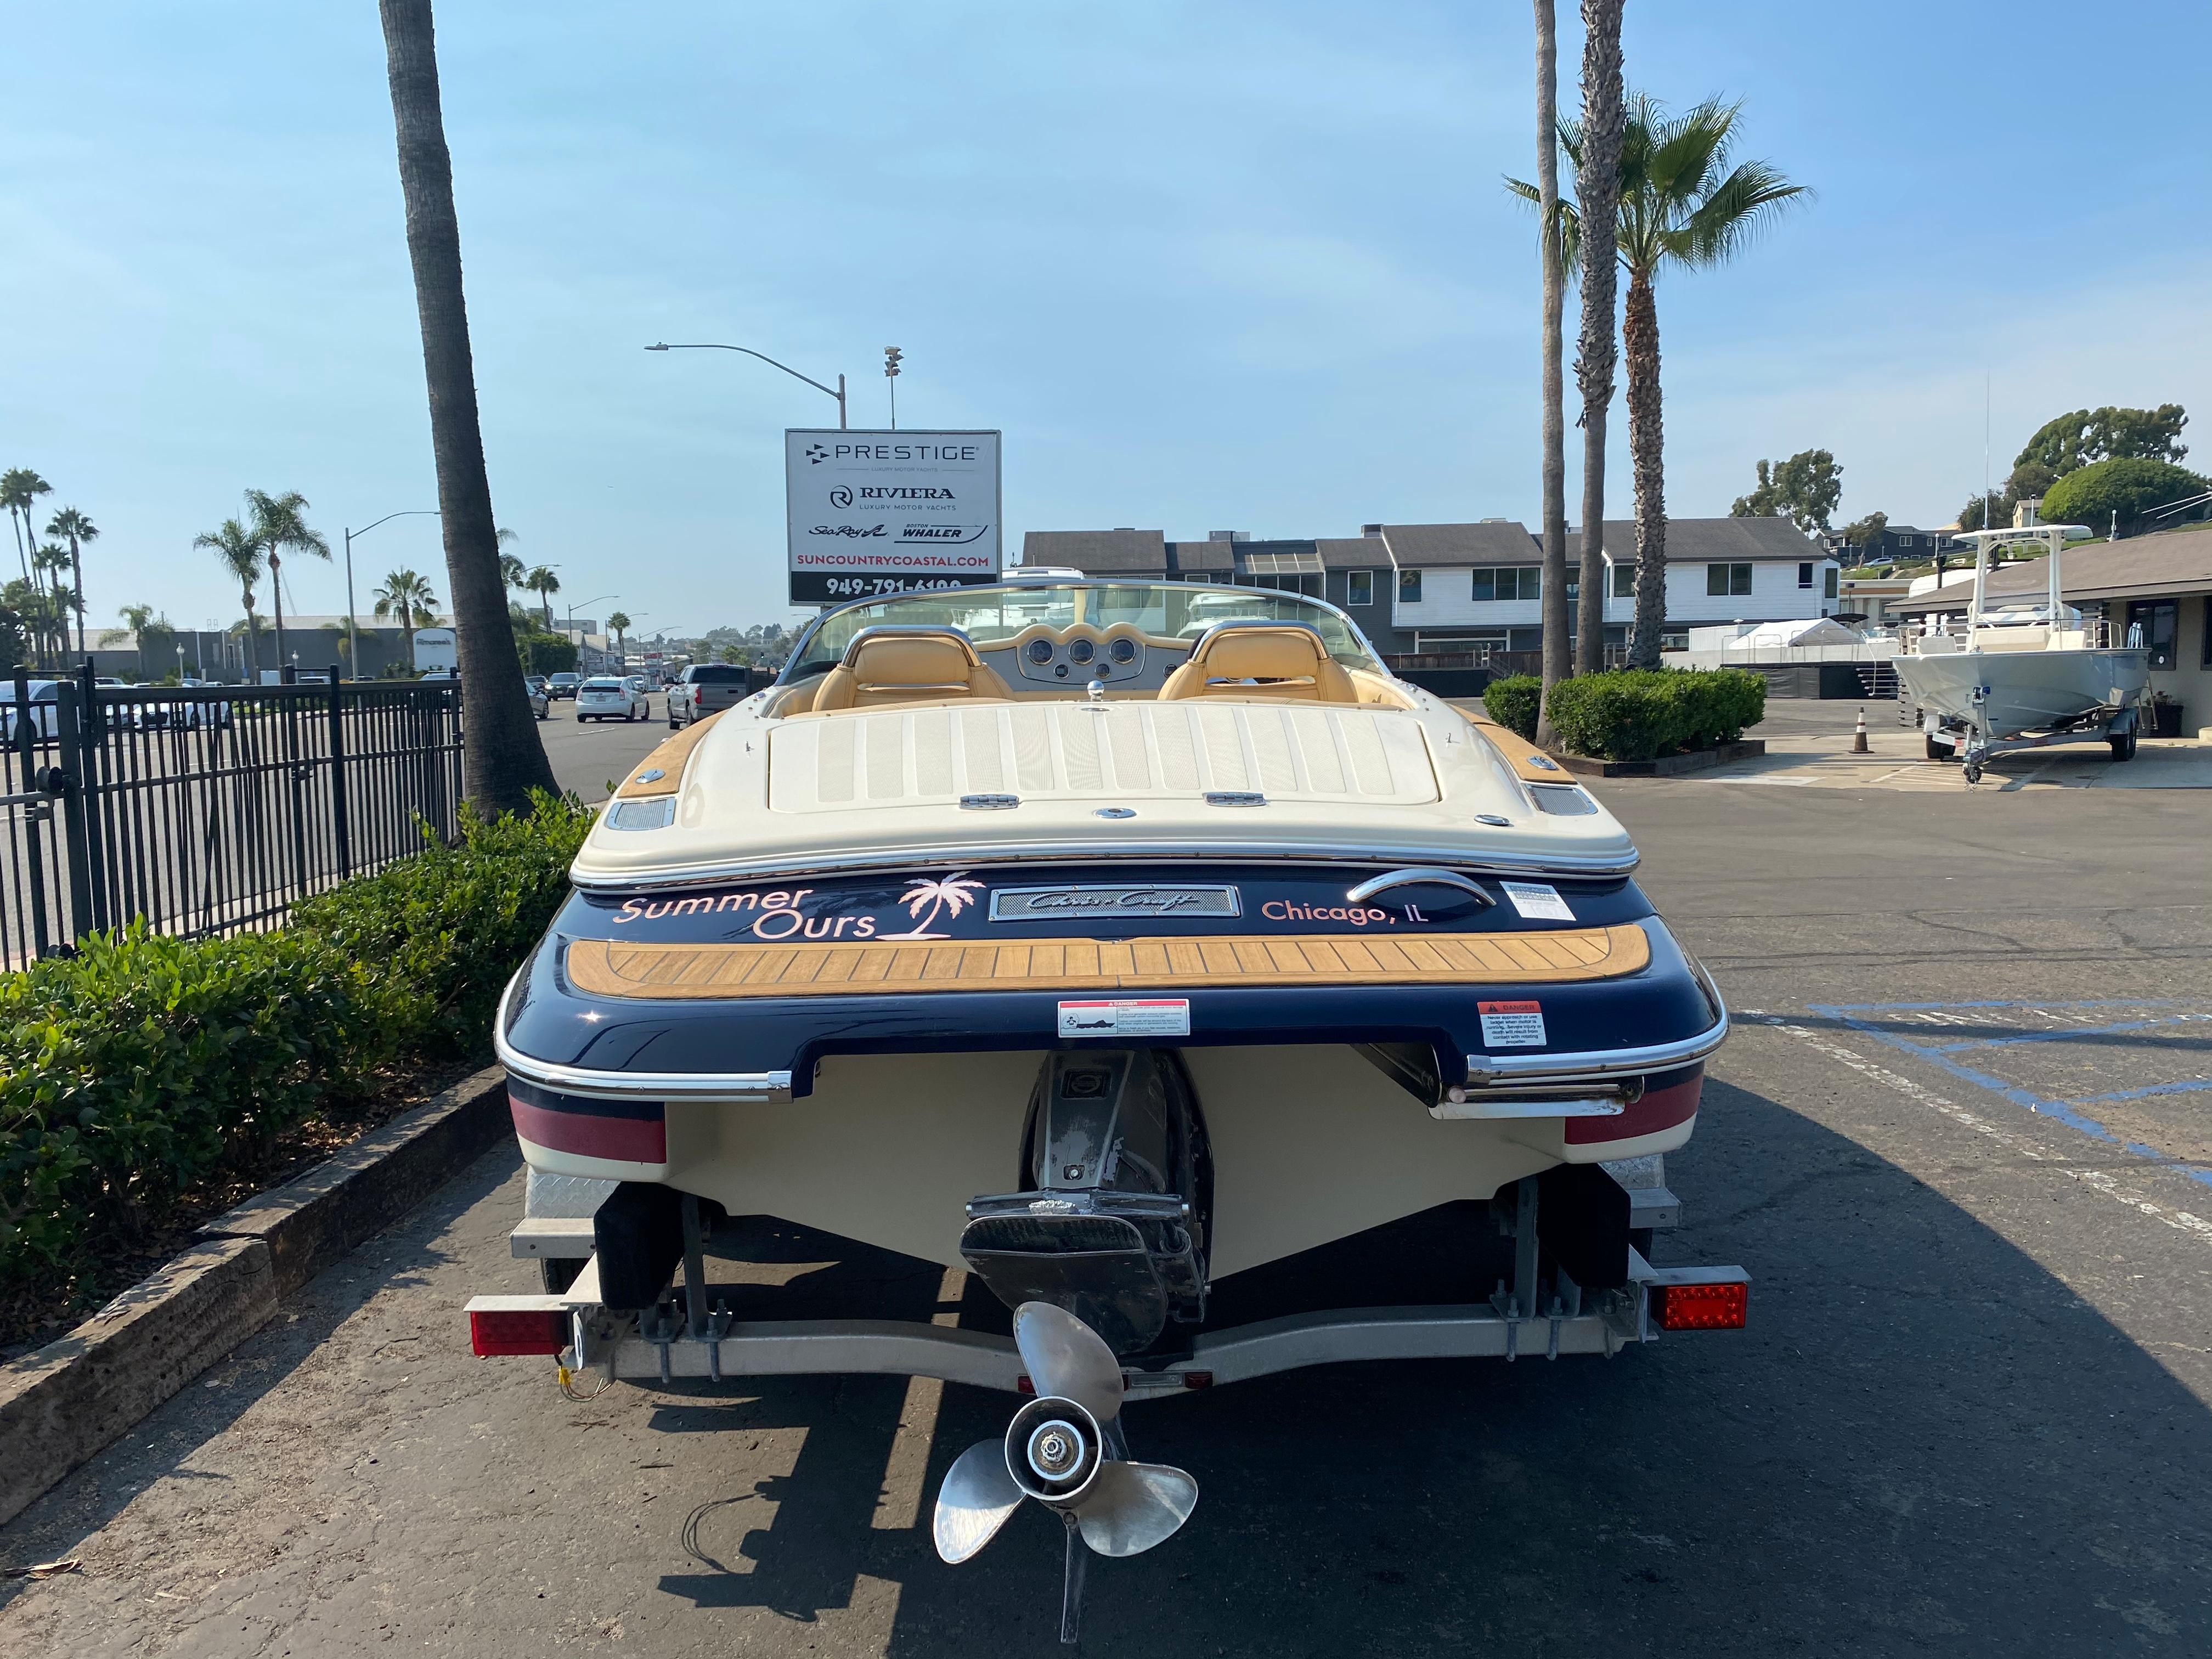 2010 Chris-Craft Lancer 20 Heritage Edition #TB880JP inventory image at Sun Country Coastal in Newport Beach